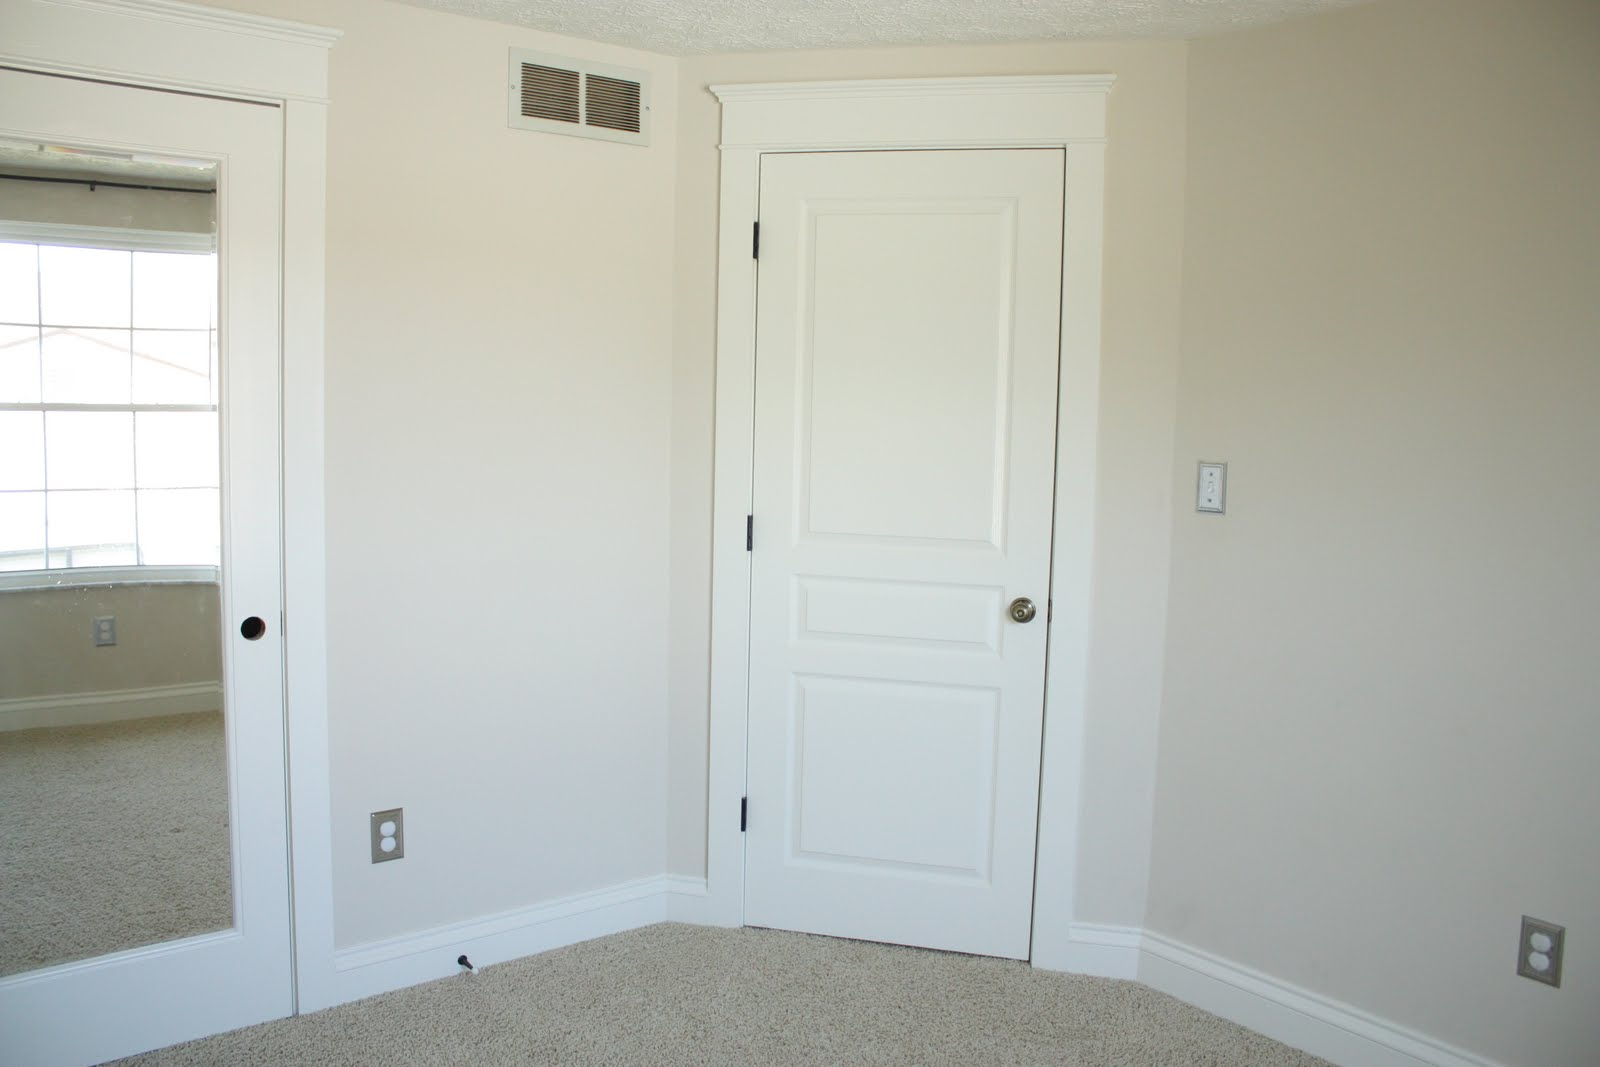 white bedroom doors that one outlet cover is white